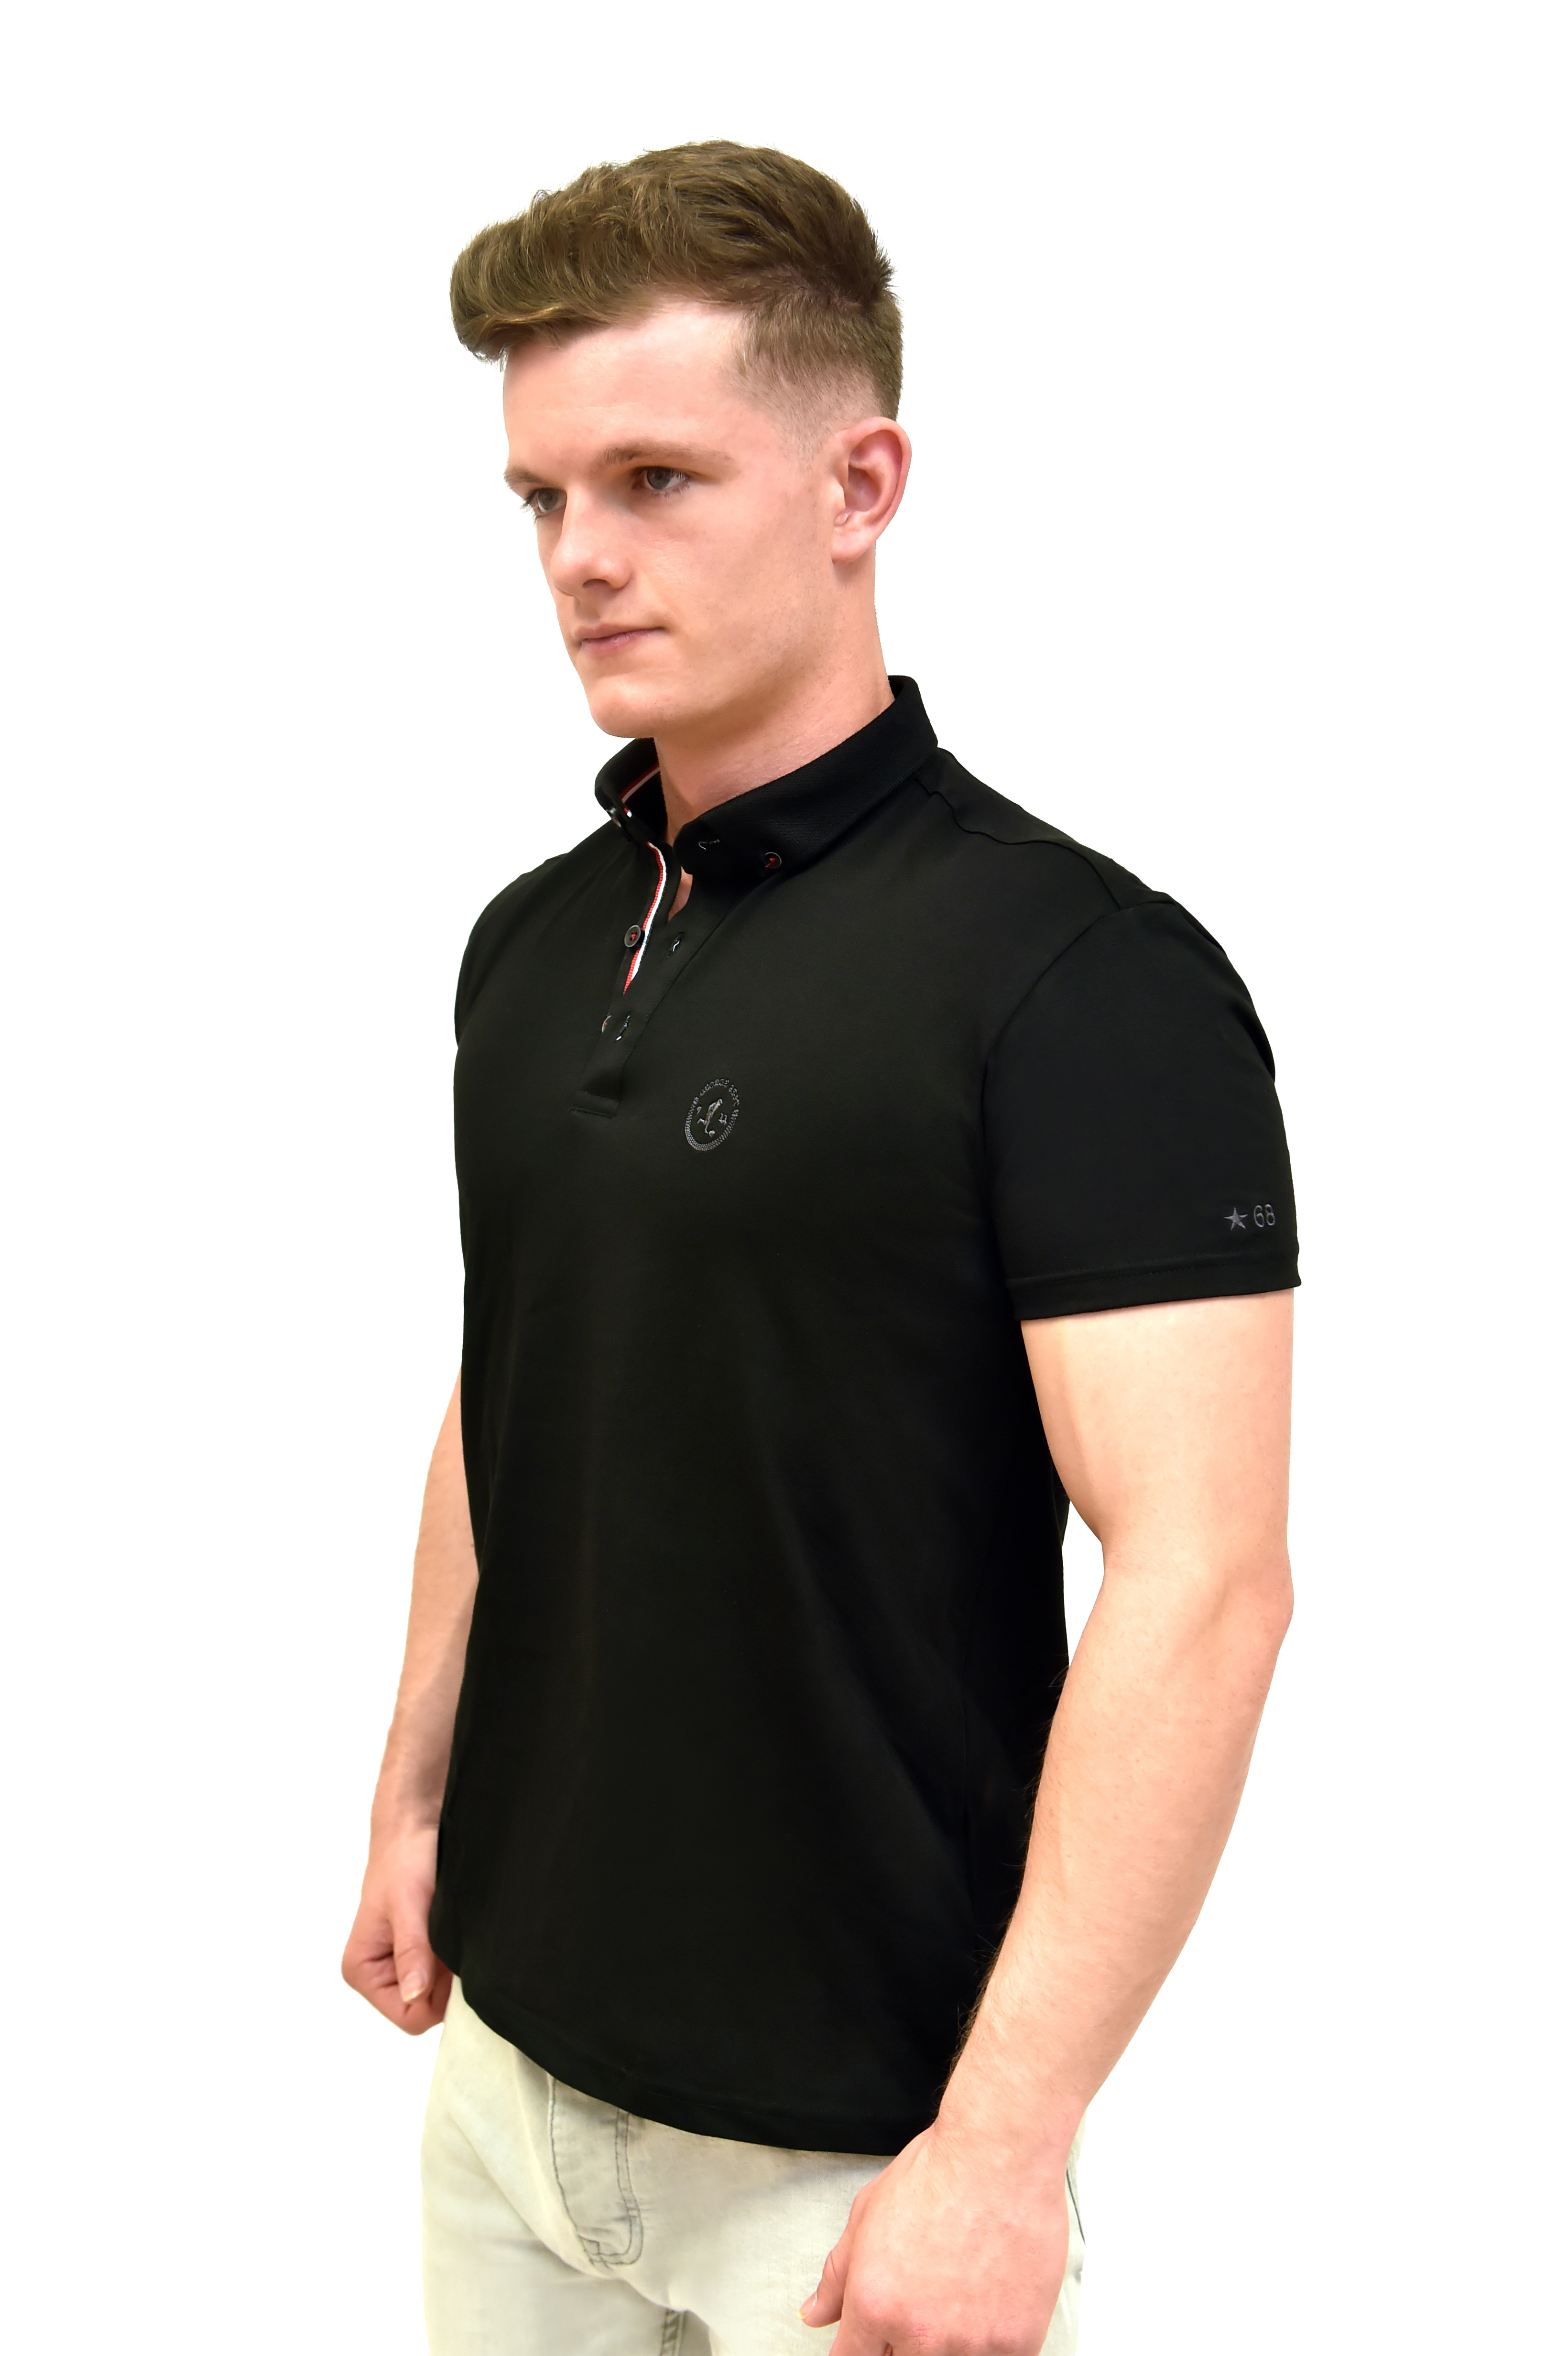 9a16e315 Best White Polo Shirt With Button Down Collar - George Best Clothing